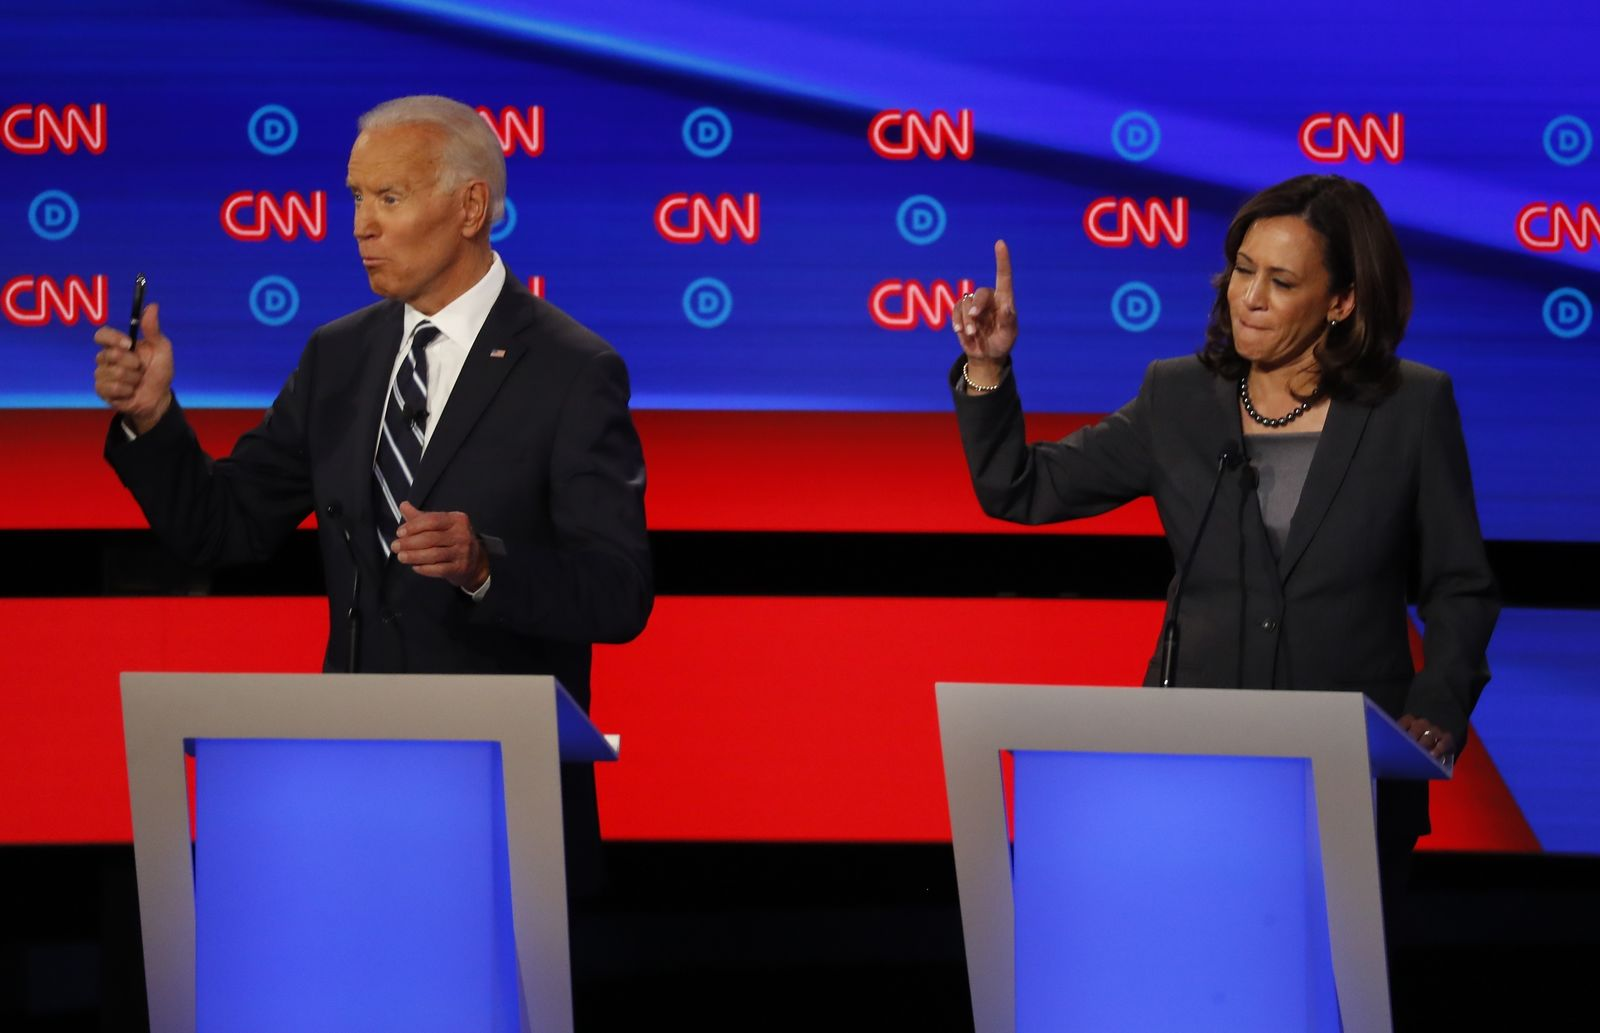 FILE - In this July 31, 2019 photo, Sen. Kamala Harris, D-Calif., and former Vice President Joe Biden participate in the second of two Democratic presidential primary debates hosted by CNN in the Fox Theatre in Detroit. (AP Photo/Paul Sancya)